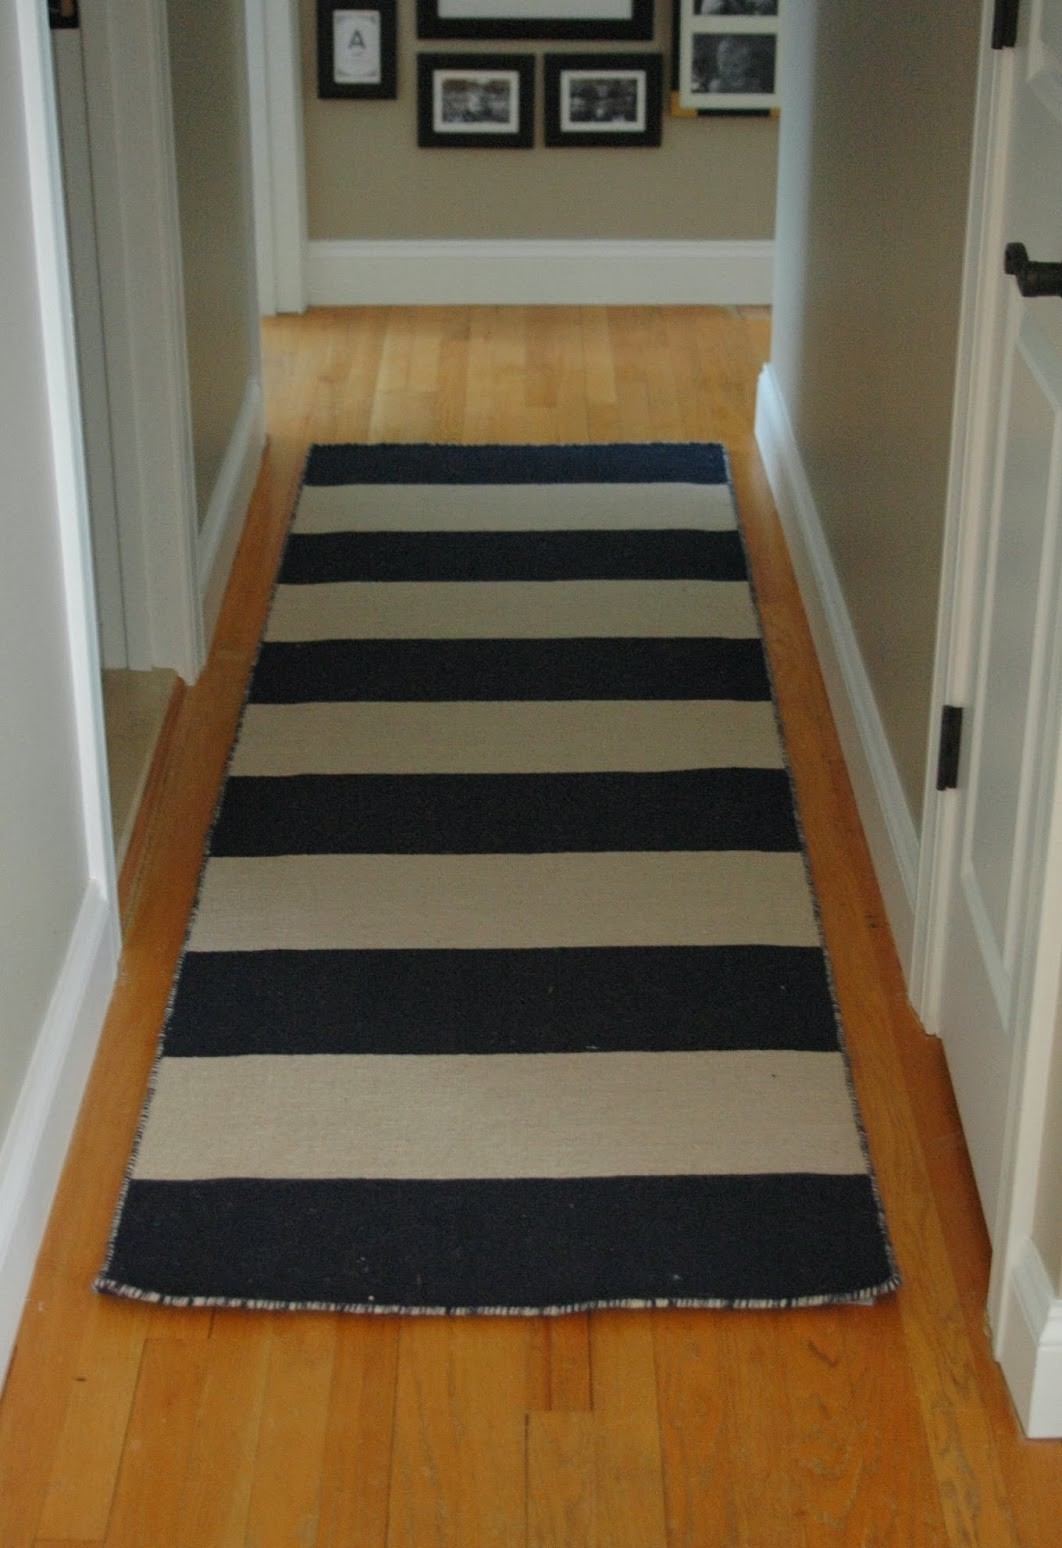 Black And White Striped Runner Rug Creative Rugs Decoration Regarding Extra Long Runners For Hallway (#5 of 20)